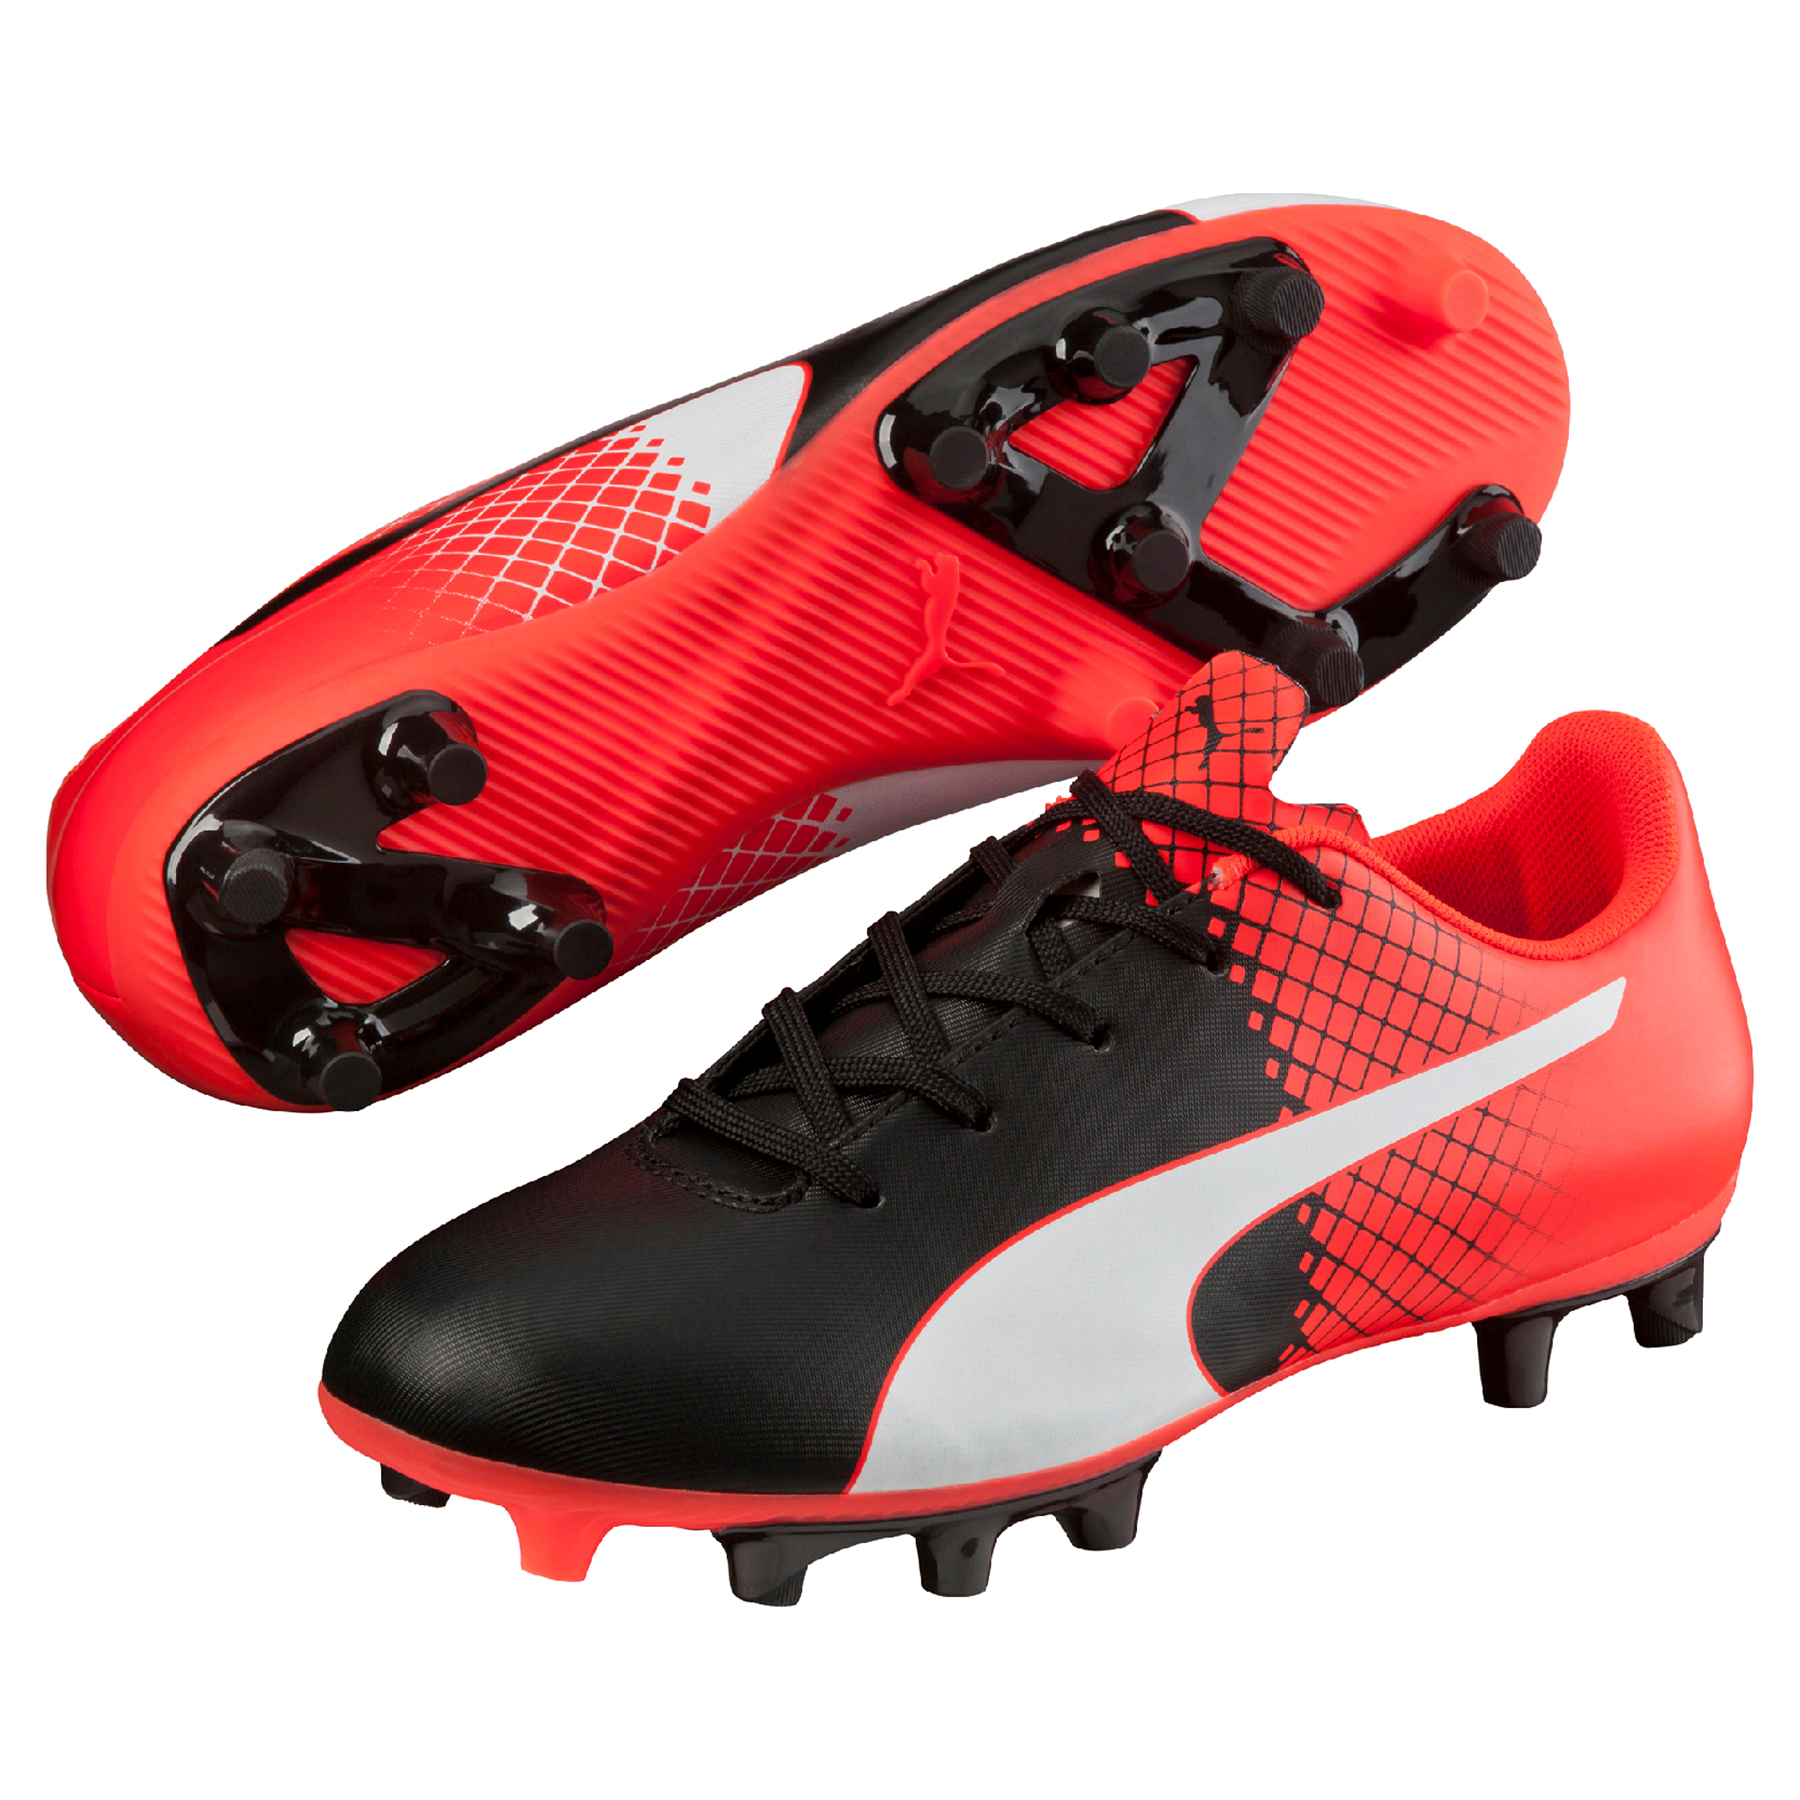 Buy Puma evoSPEED Rugby Boots - compare prices 1dc55270f8dd